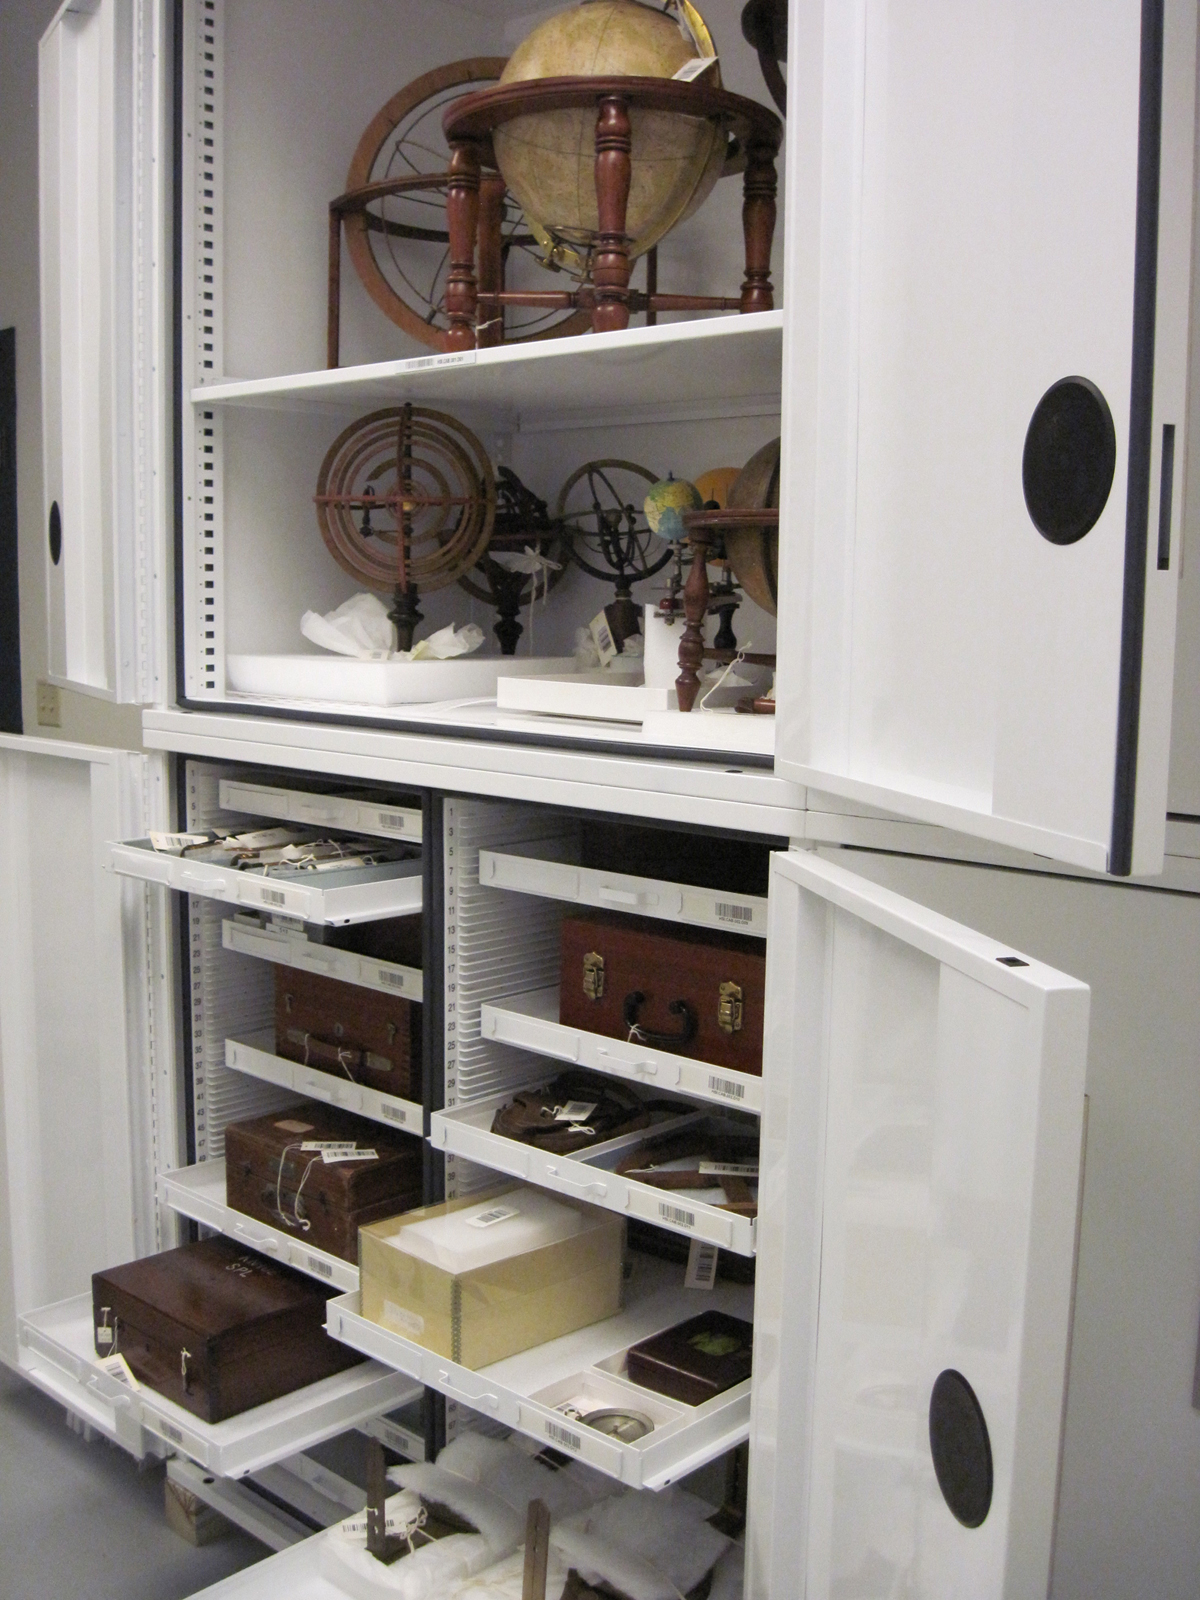 objects in storage at the Peabody Museum